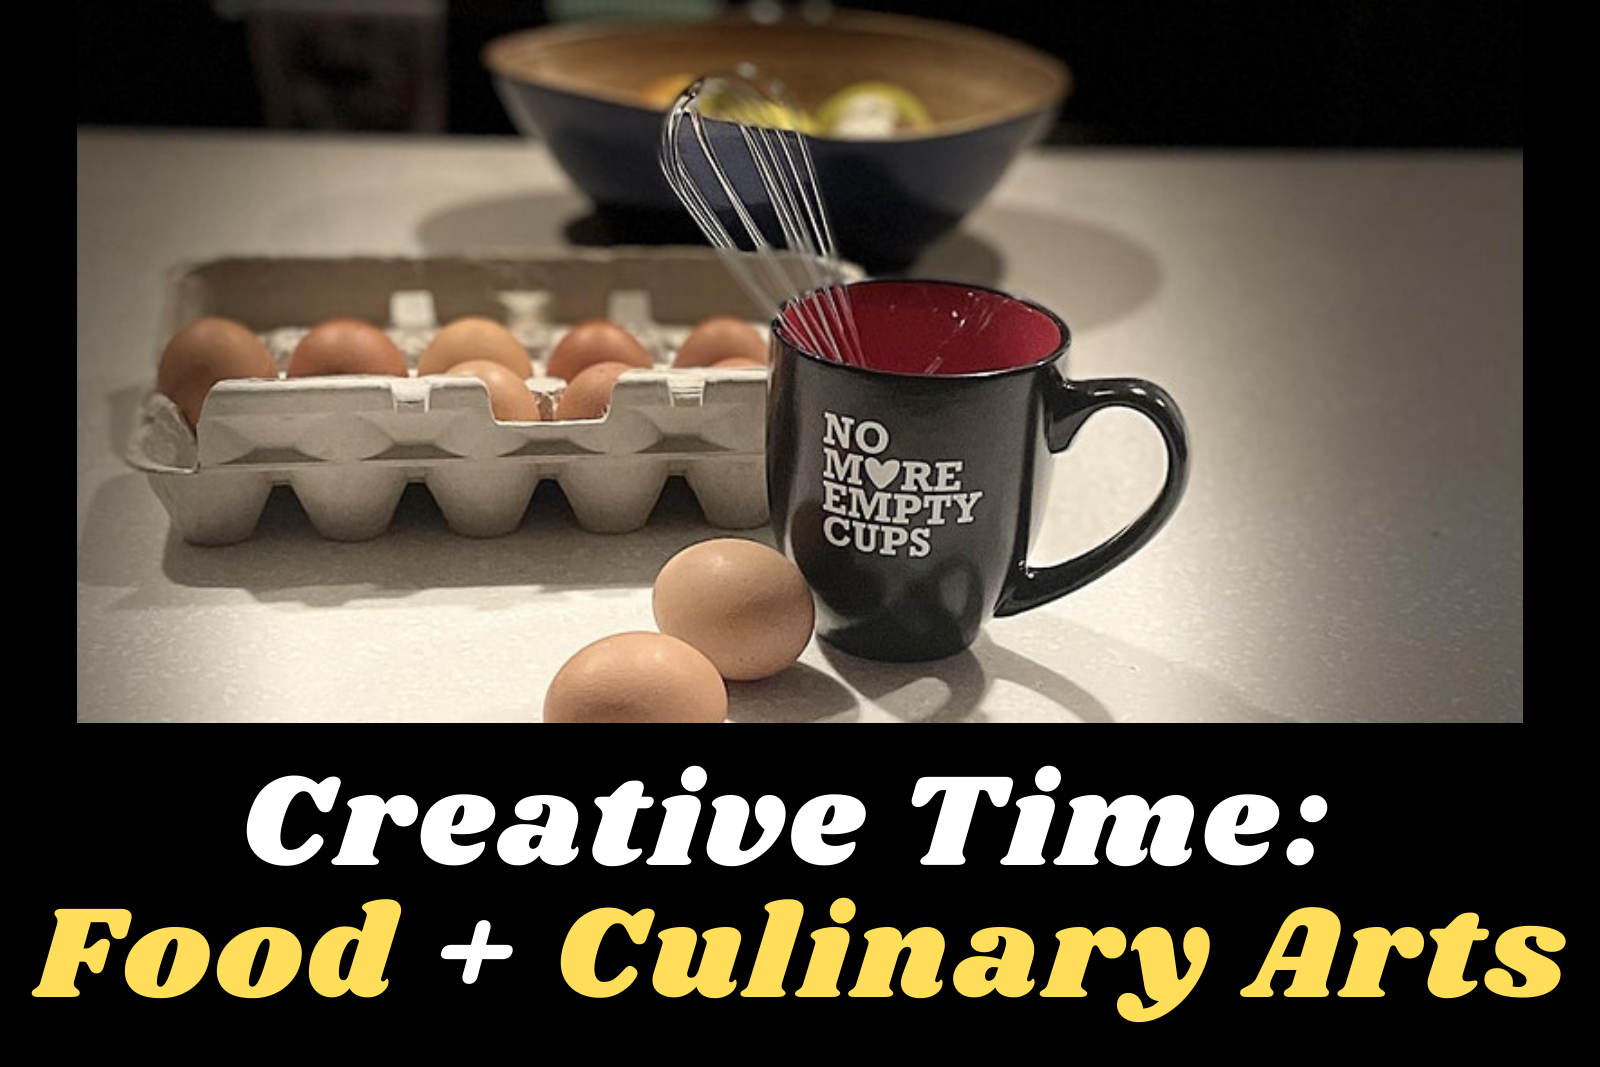 Creative Time Food and Culinary Arts with photo of Mug and Eggs